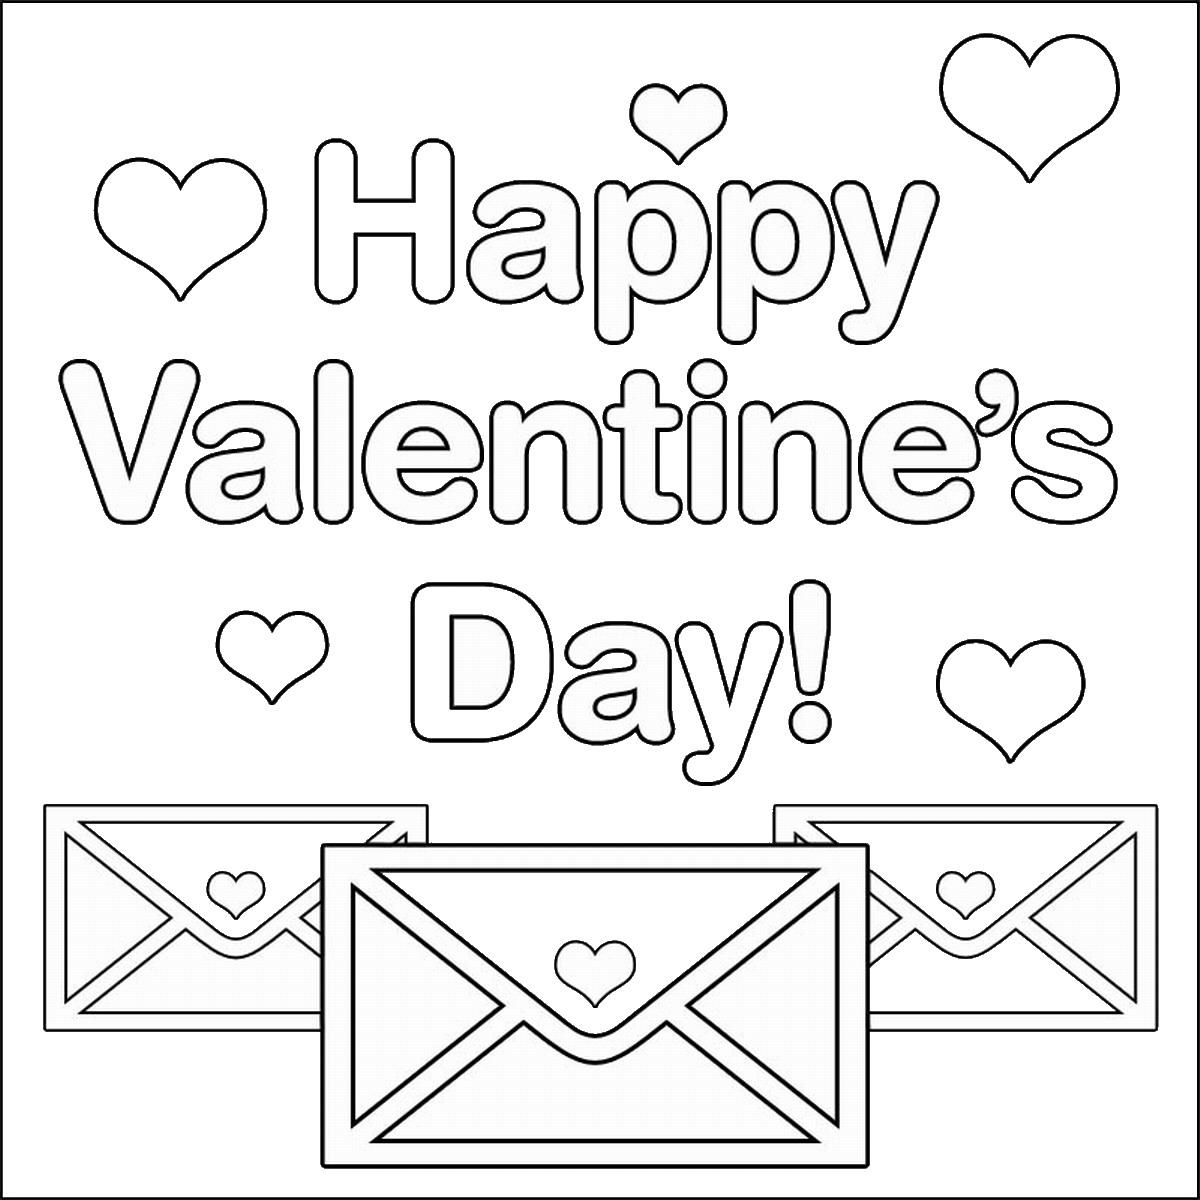 valentines day coloring pages free printable valentines day coloring pages day pages printable valentines free coloring